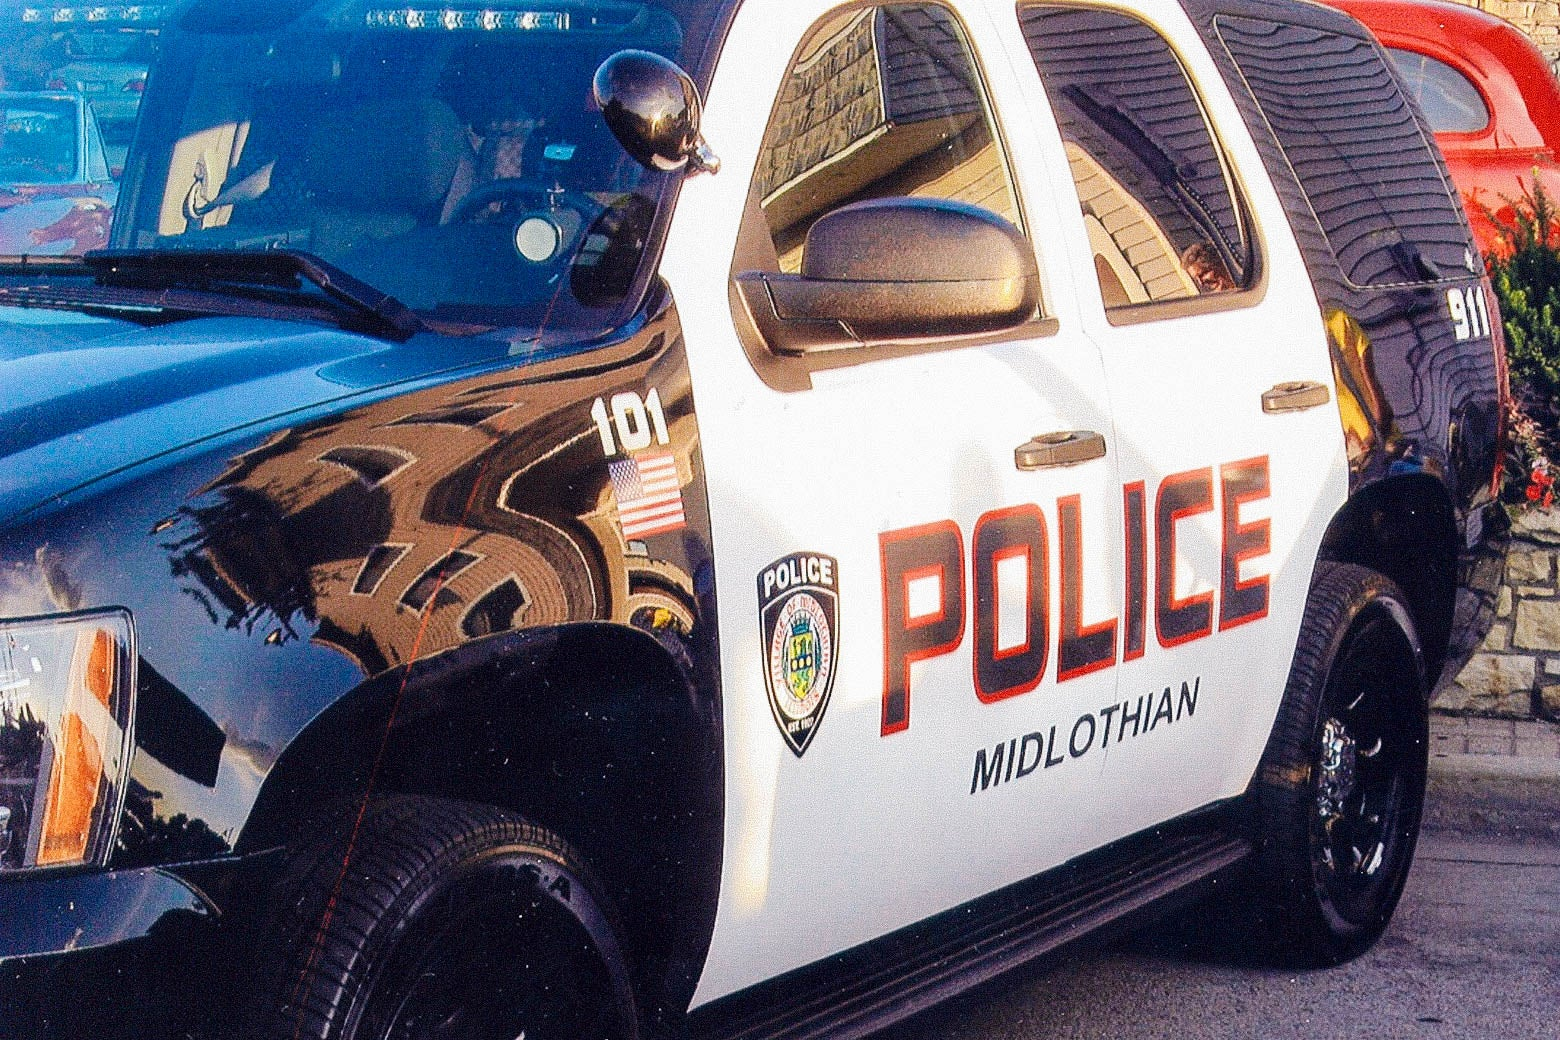 The Midlothian Police Department